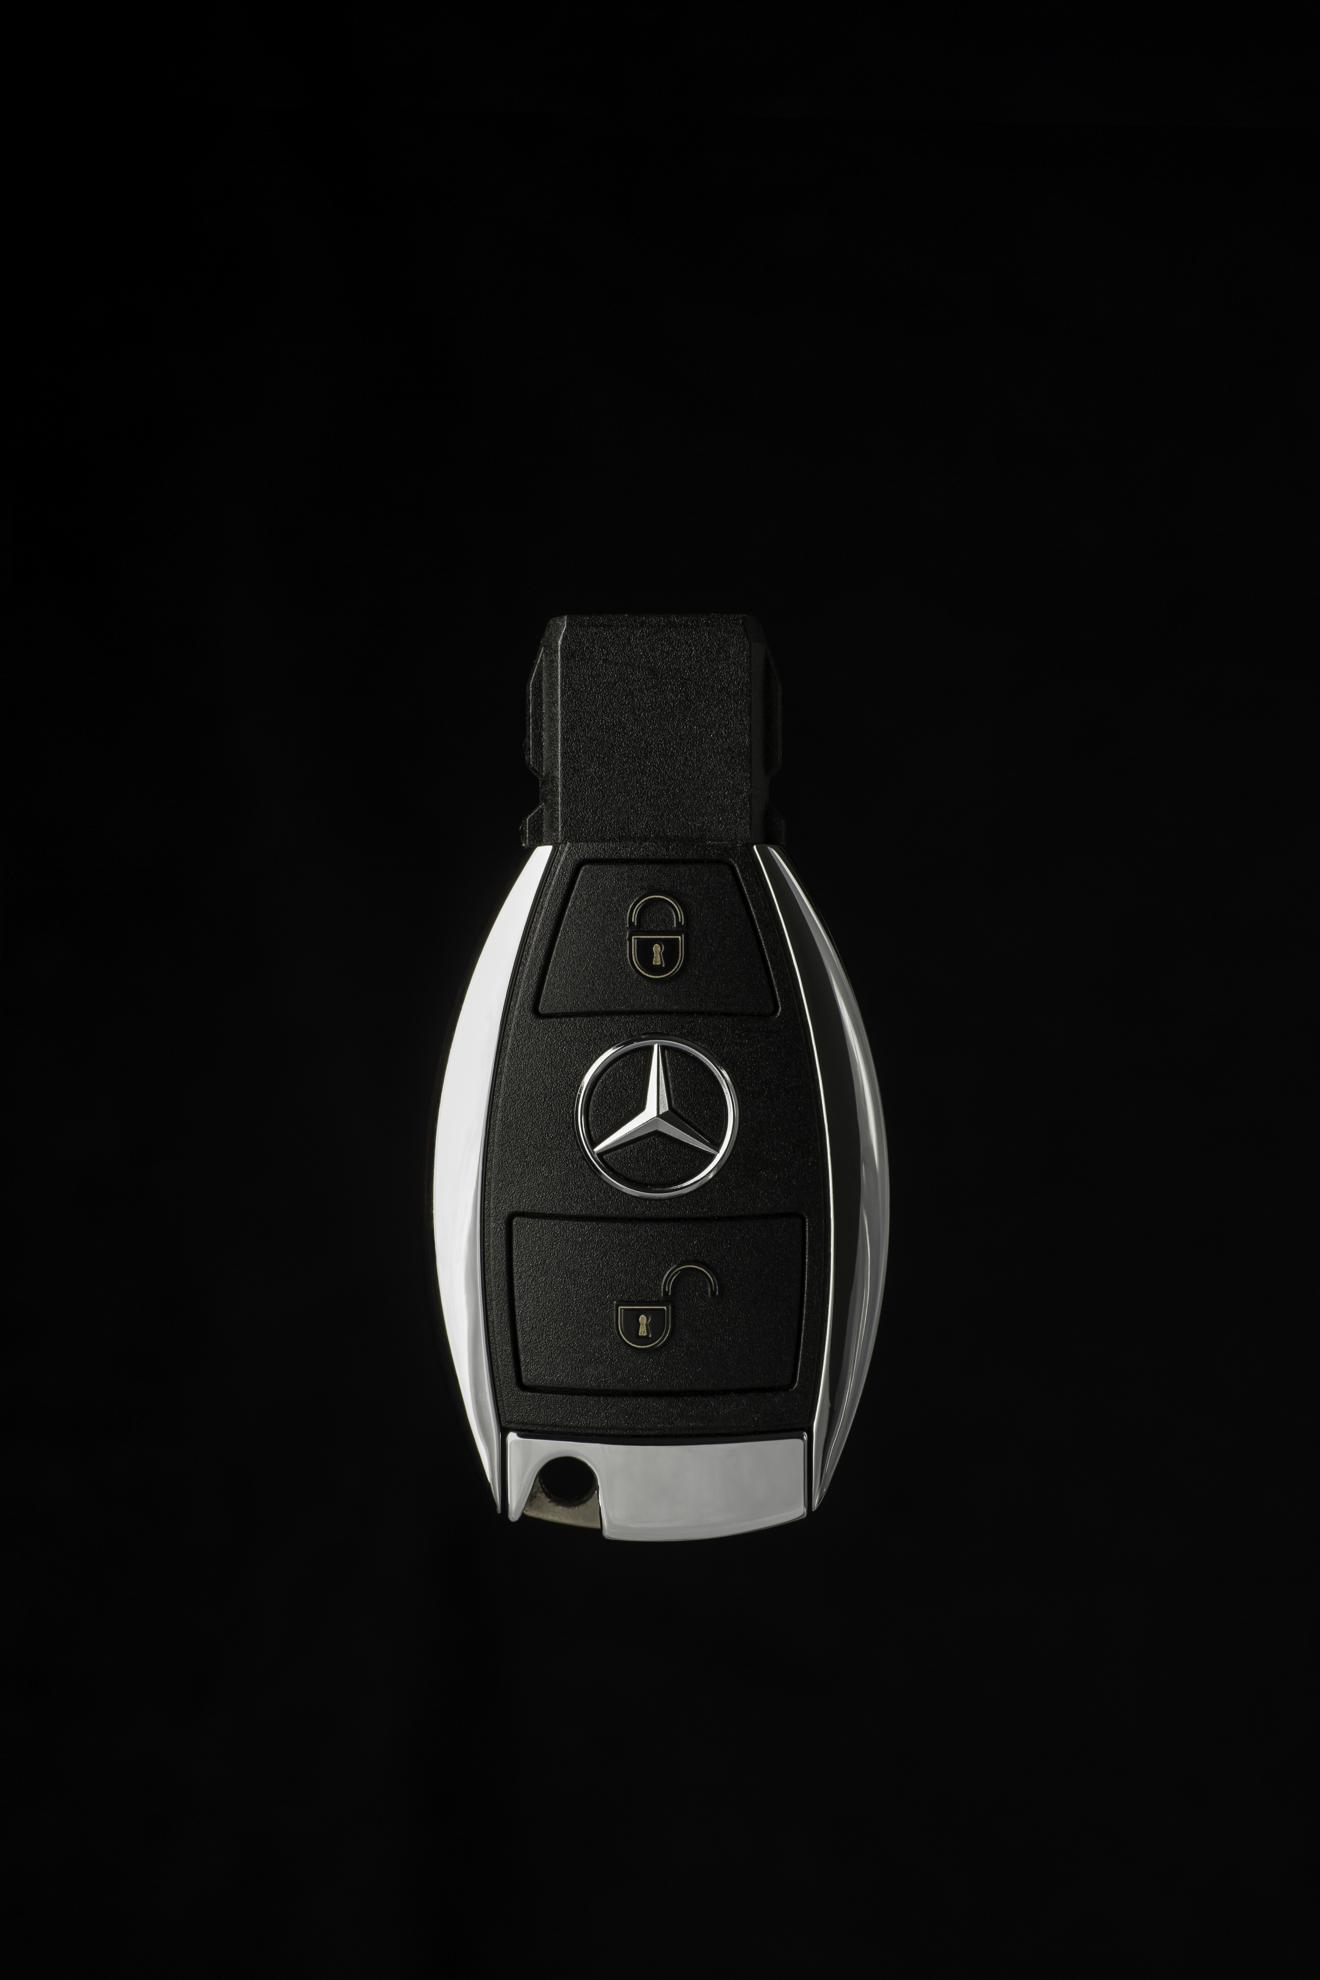 Mercedes Benz Keys To Goodwood Festival Of Speed